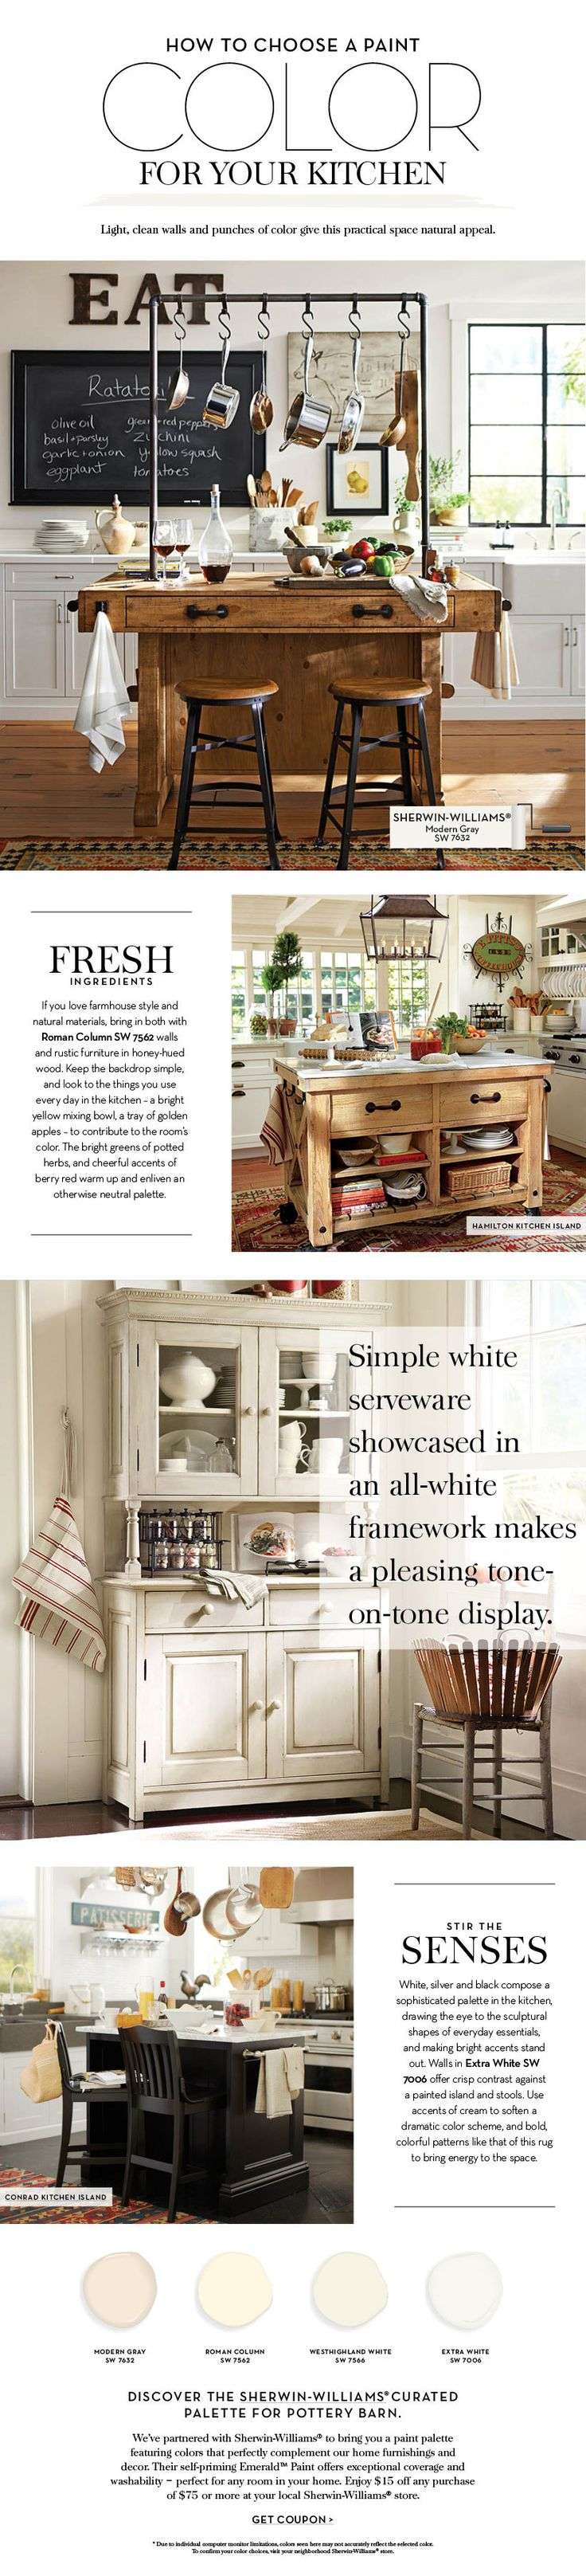 Choose a Paint Color For Your Kitchen | Pottery Barn